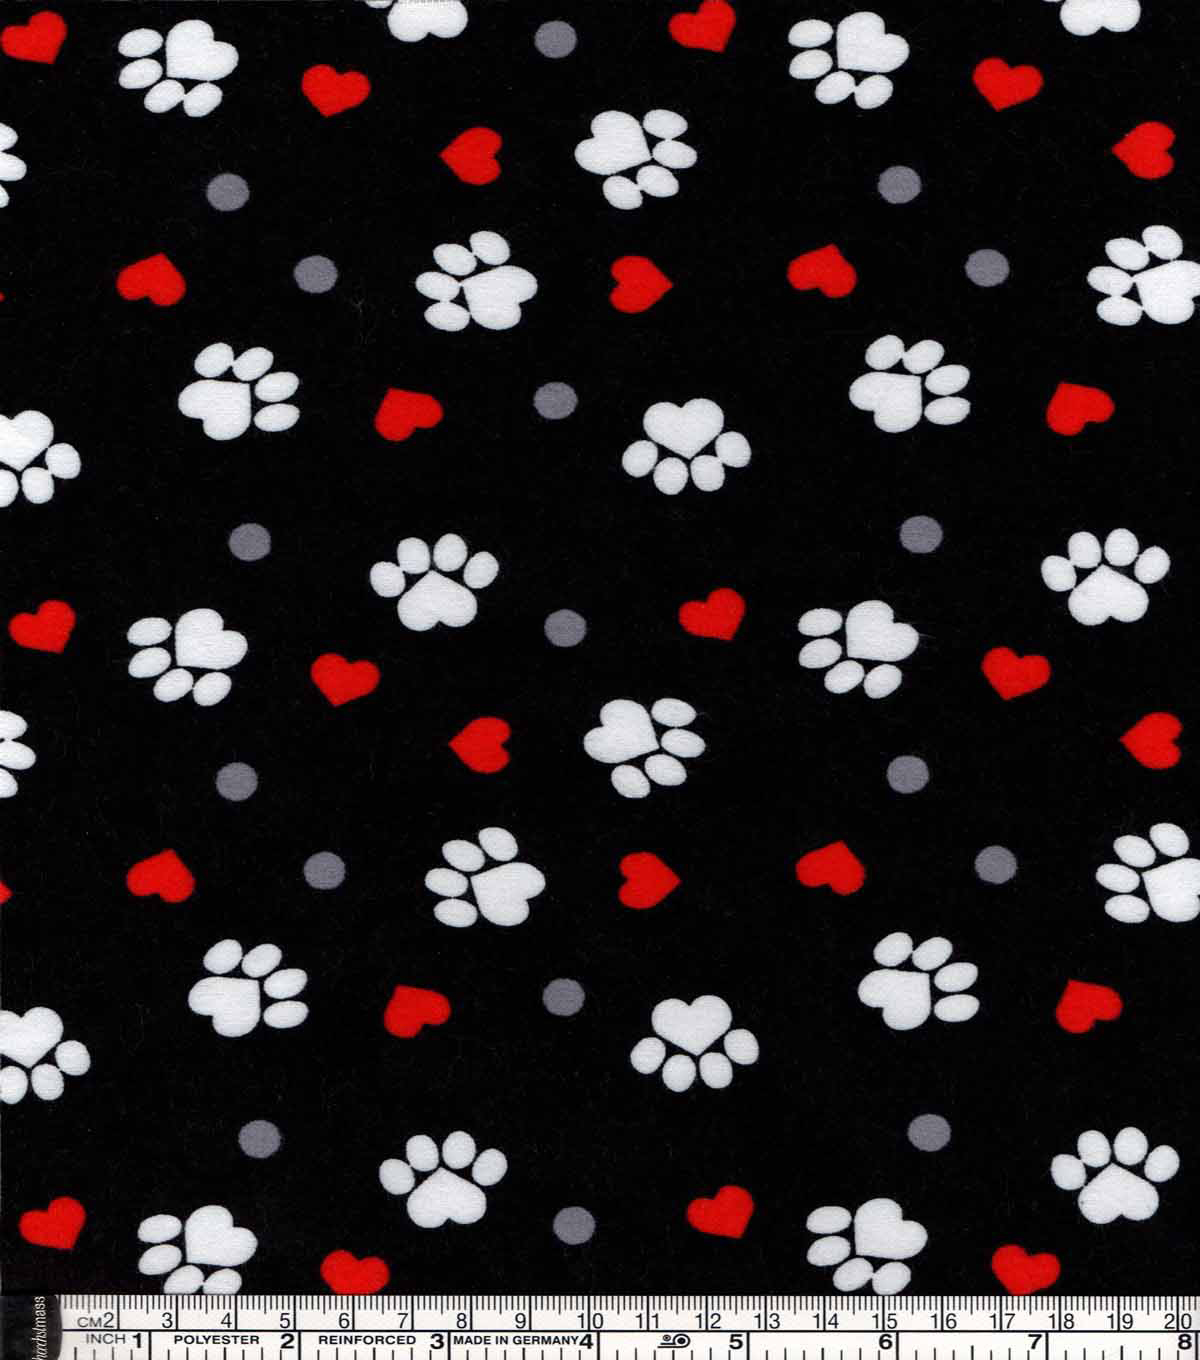 Snuggle Flannel Fabric -Paw Prints And Hearts On Black